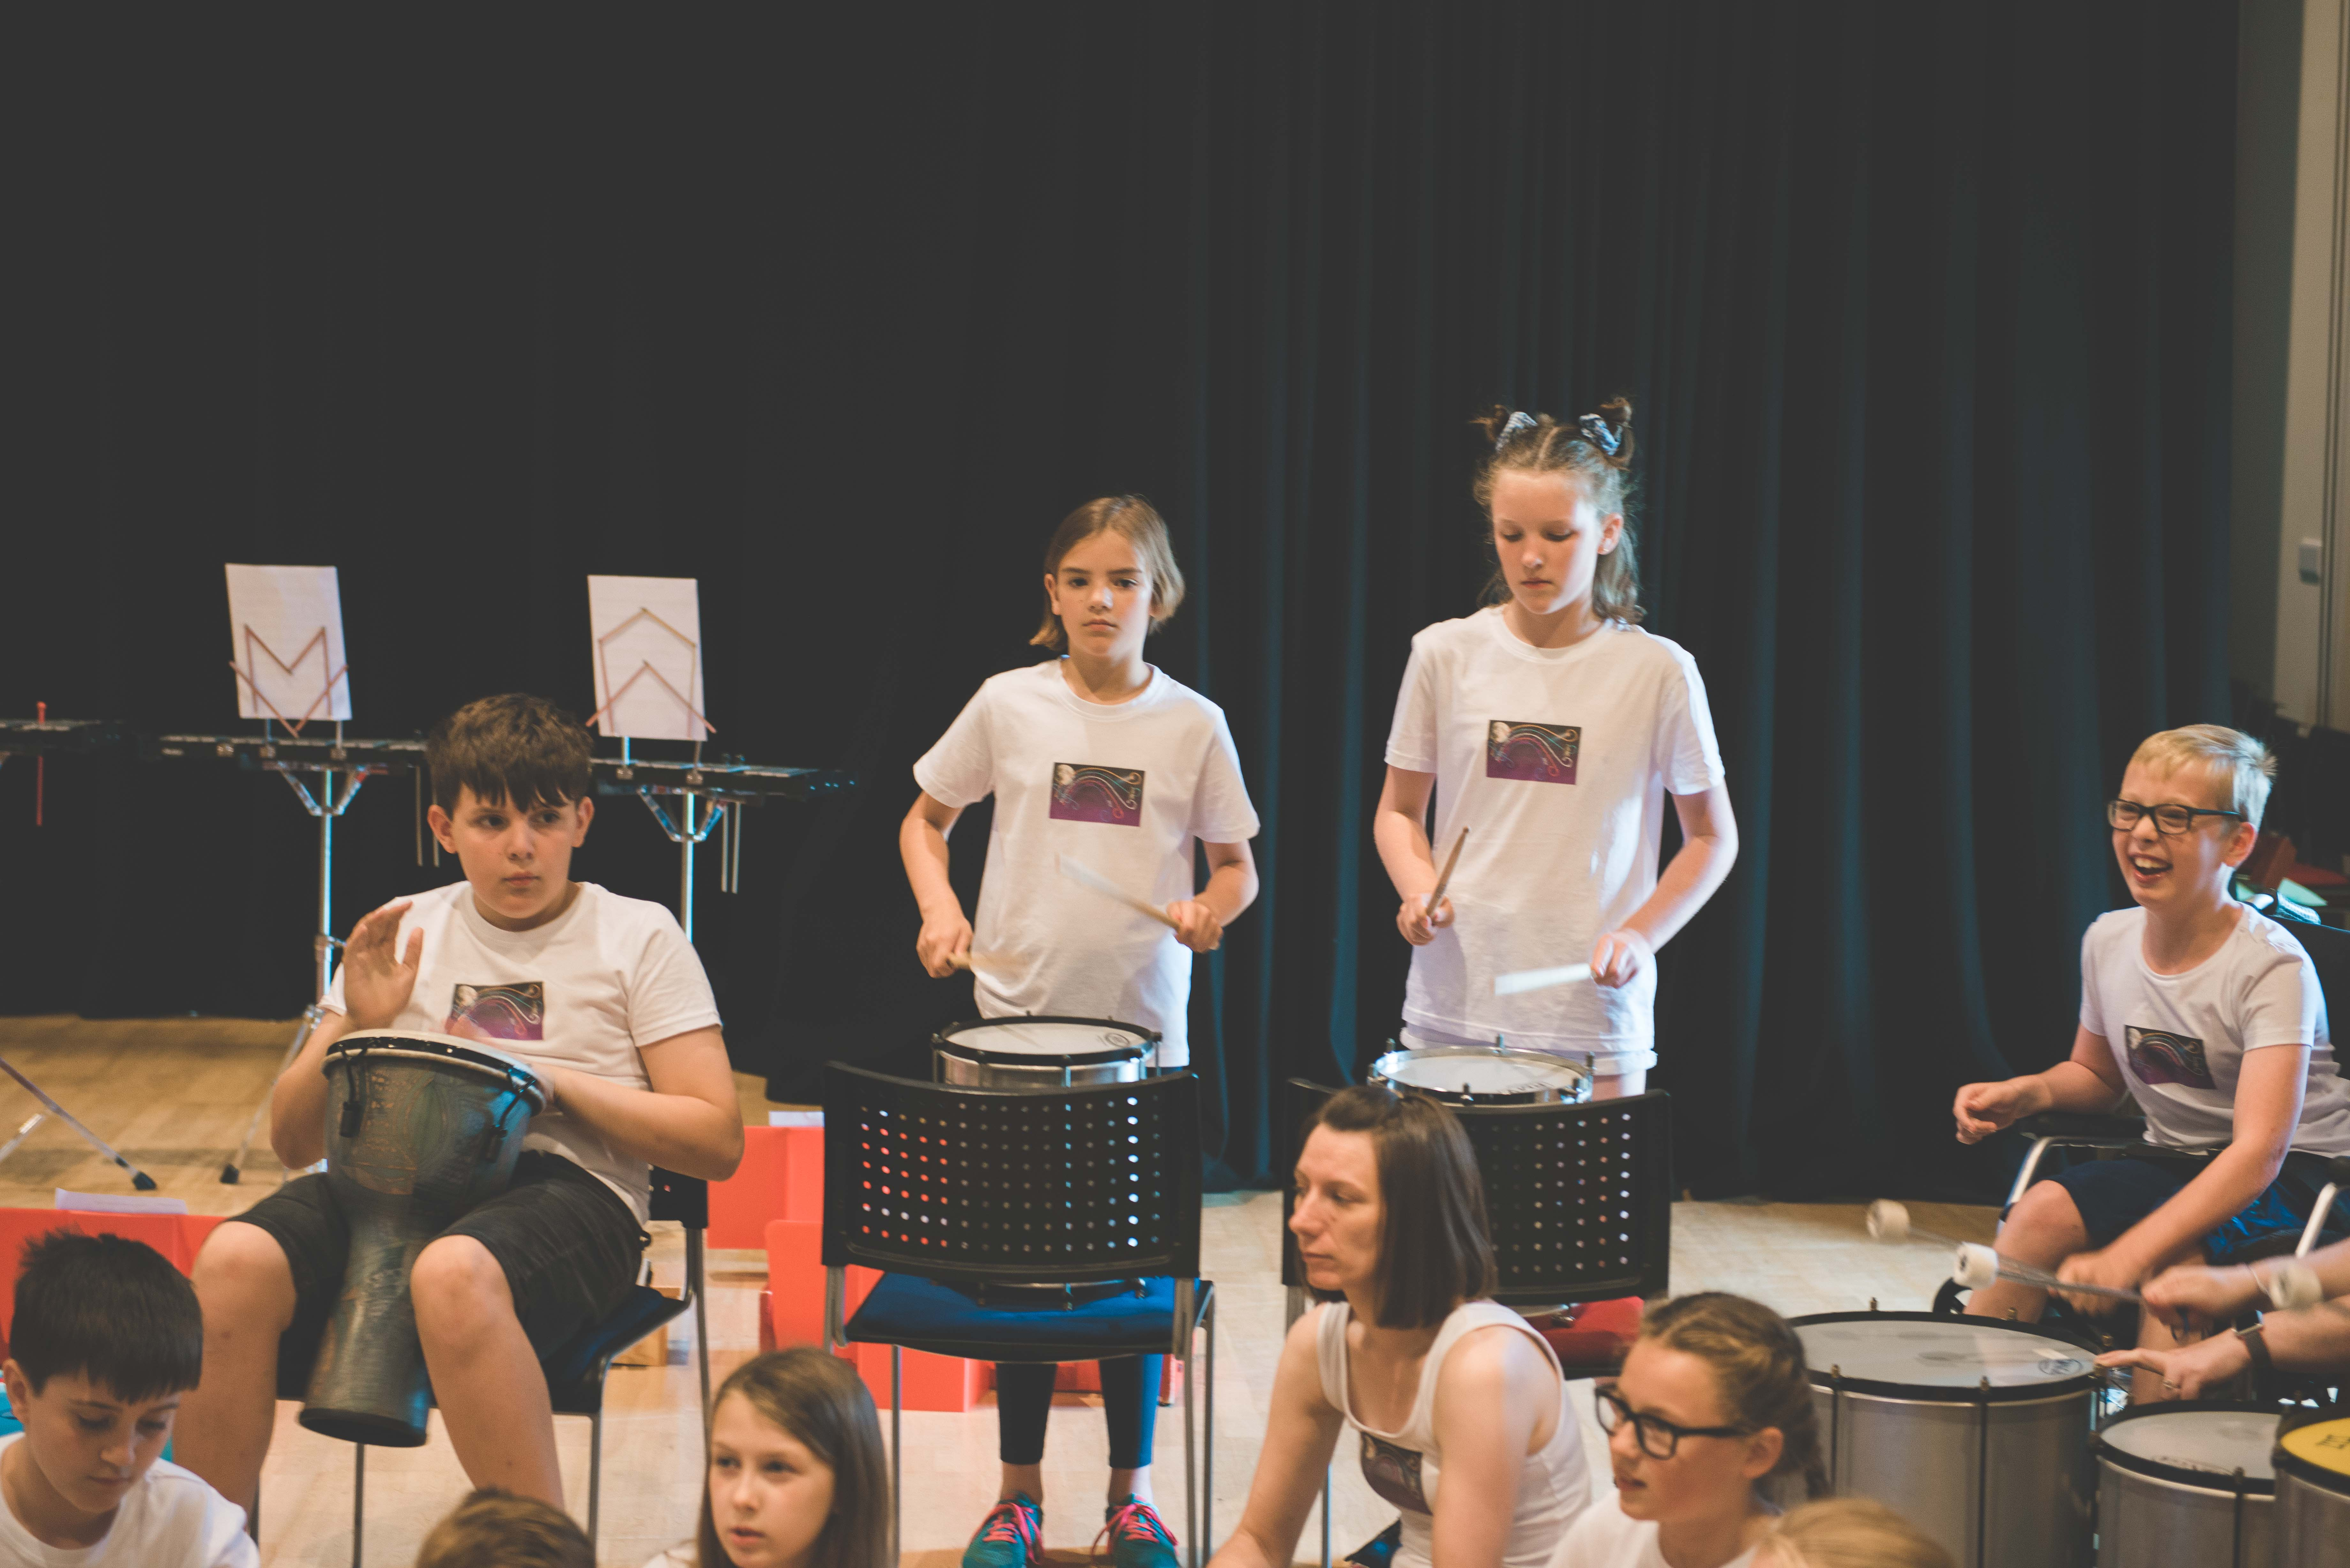 two young girls performing on tom tom drums